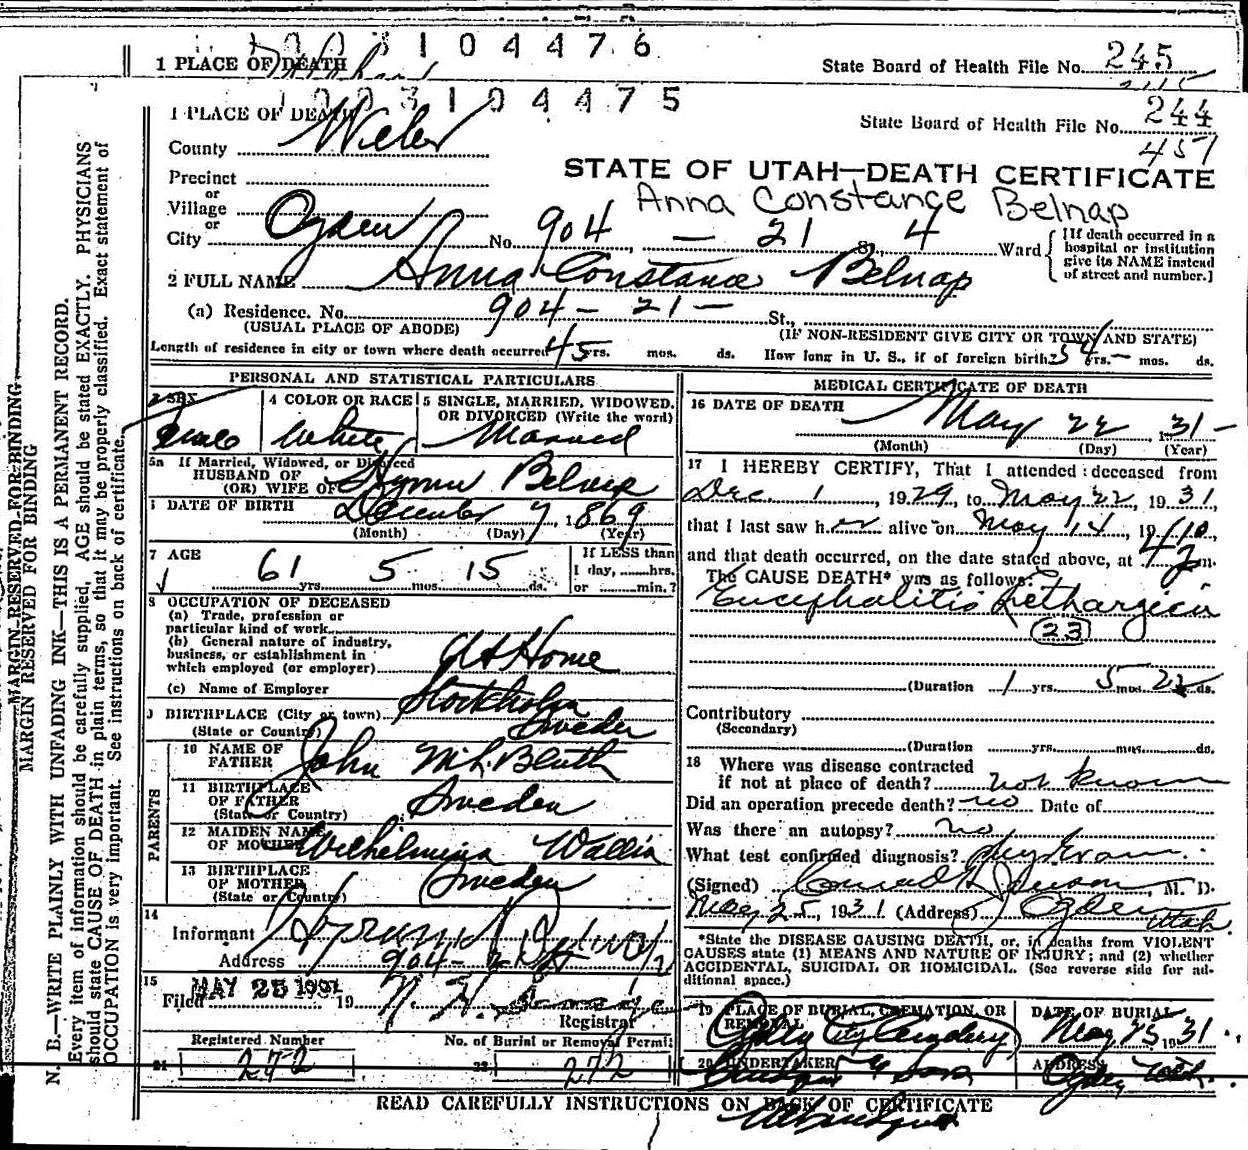 Death records death certificate anna constantia bluth belnap 1931 1betcityfo Choice Image